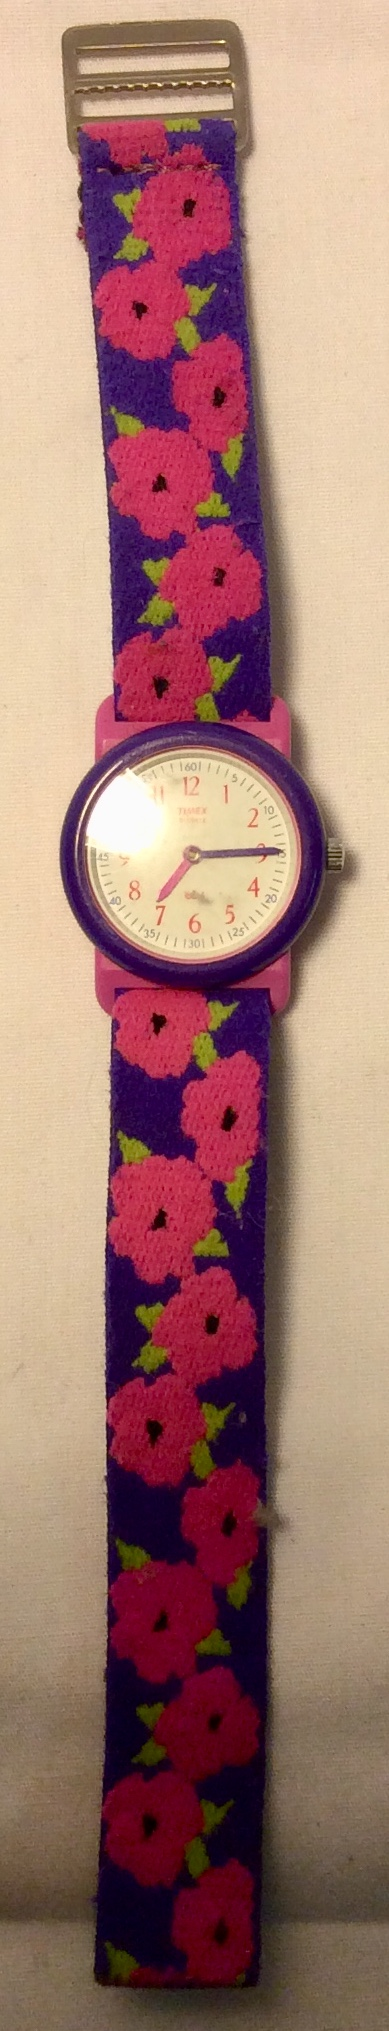 Pink and purple Timex Watch